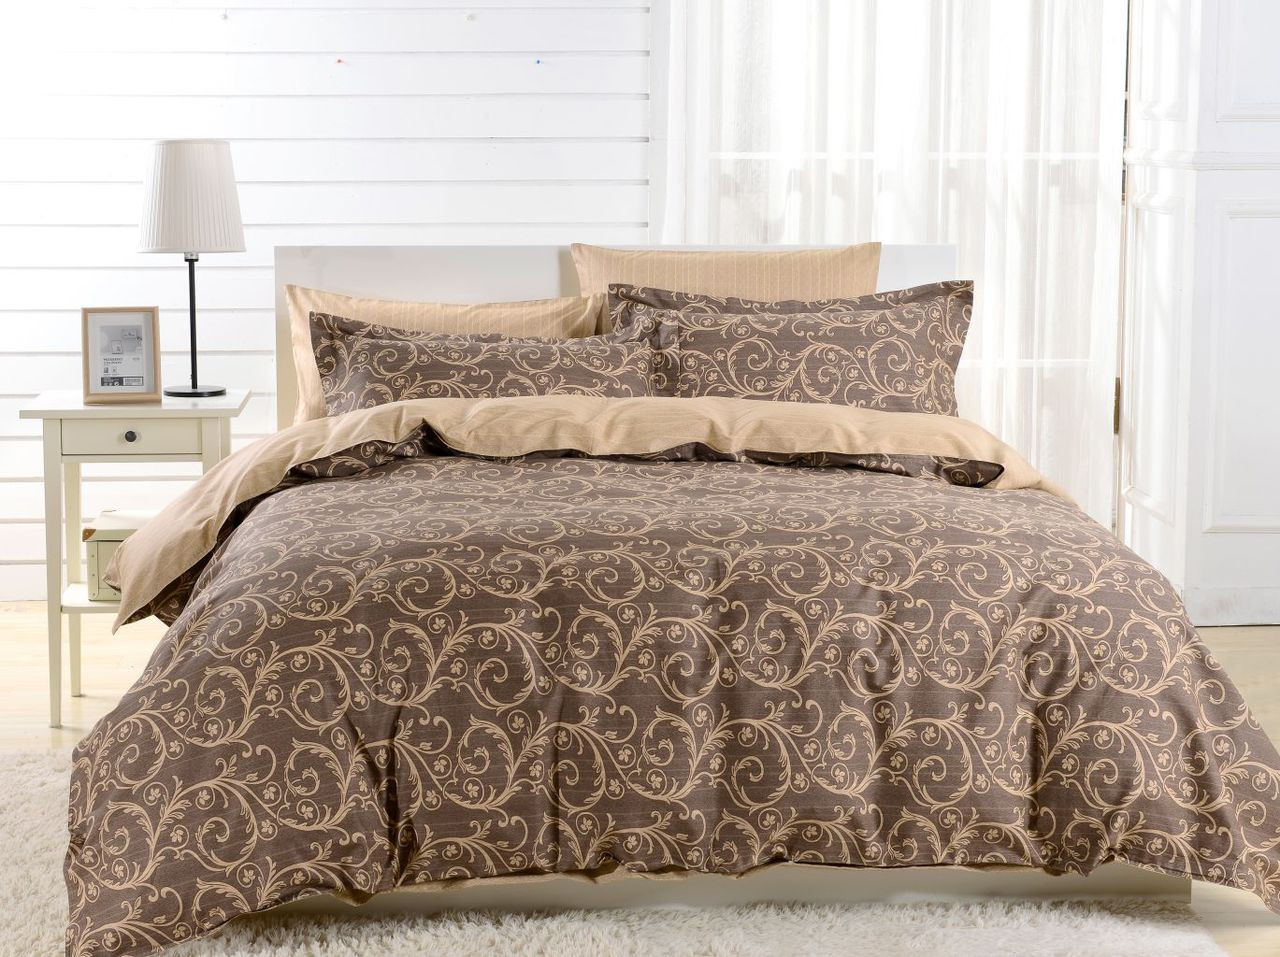 Duvet Cover Set, Dolce Mela Bedding DM602Q